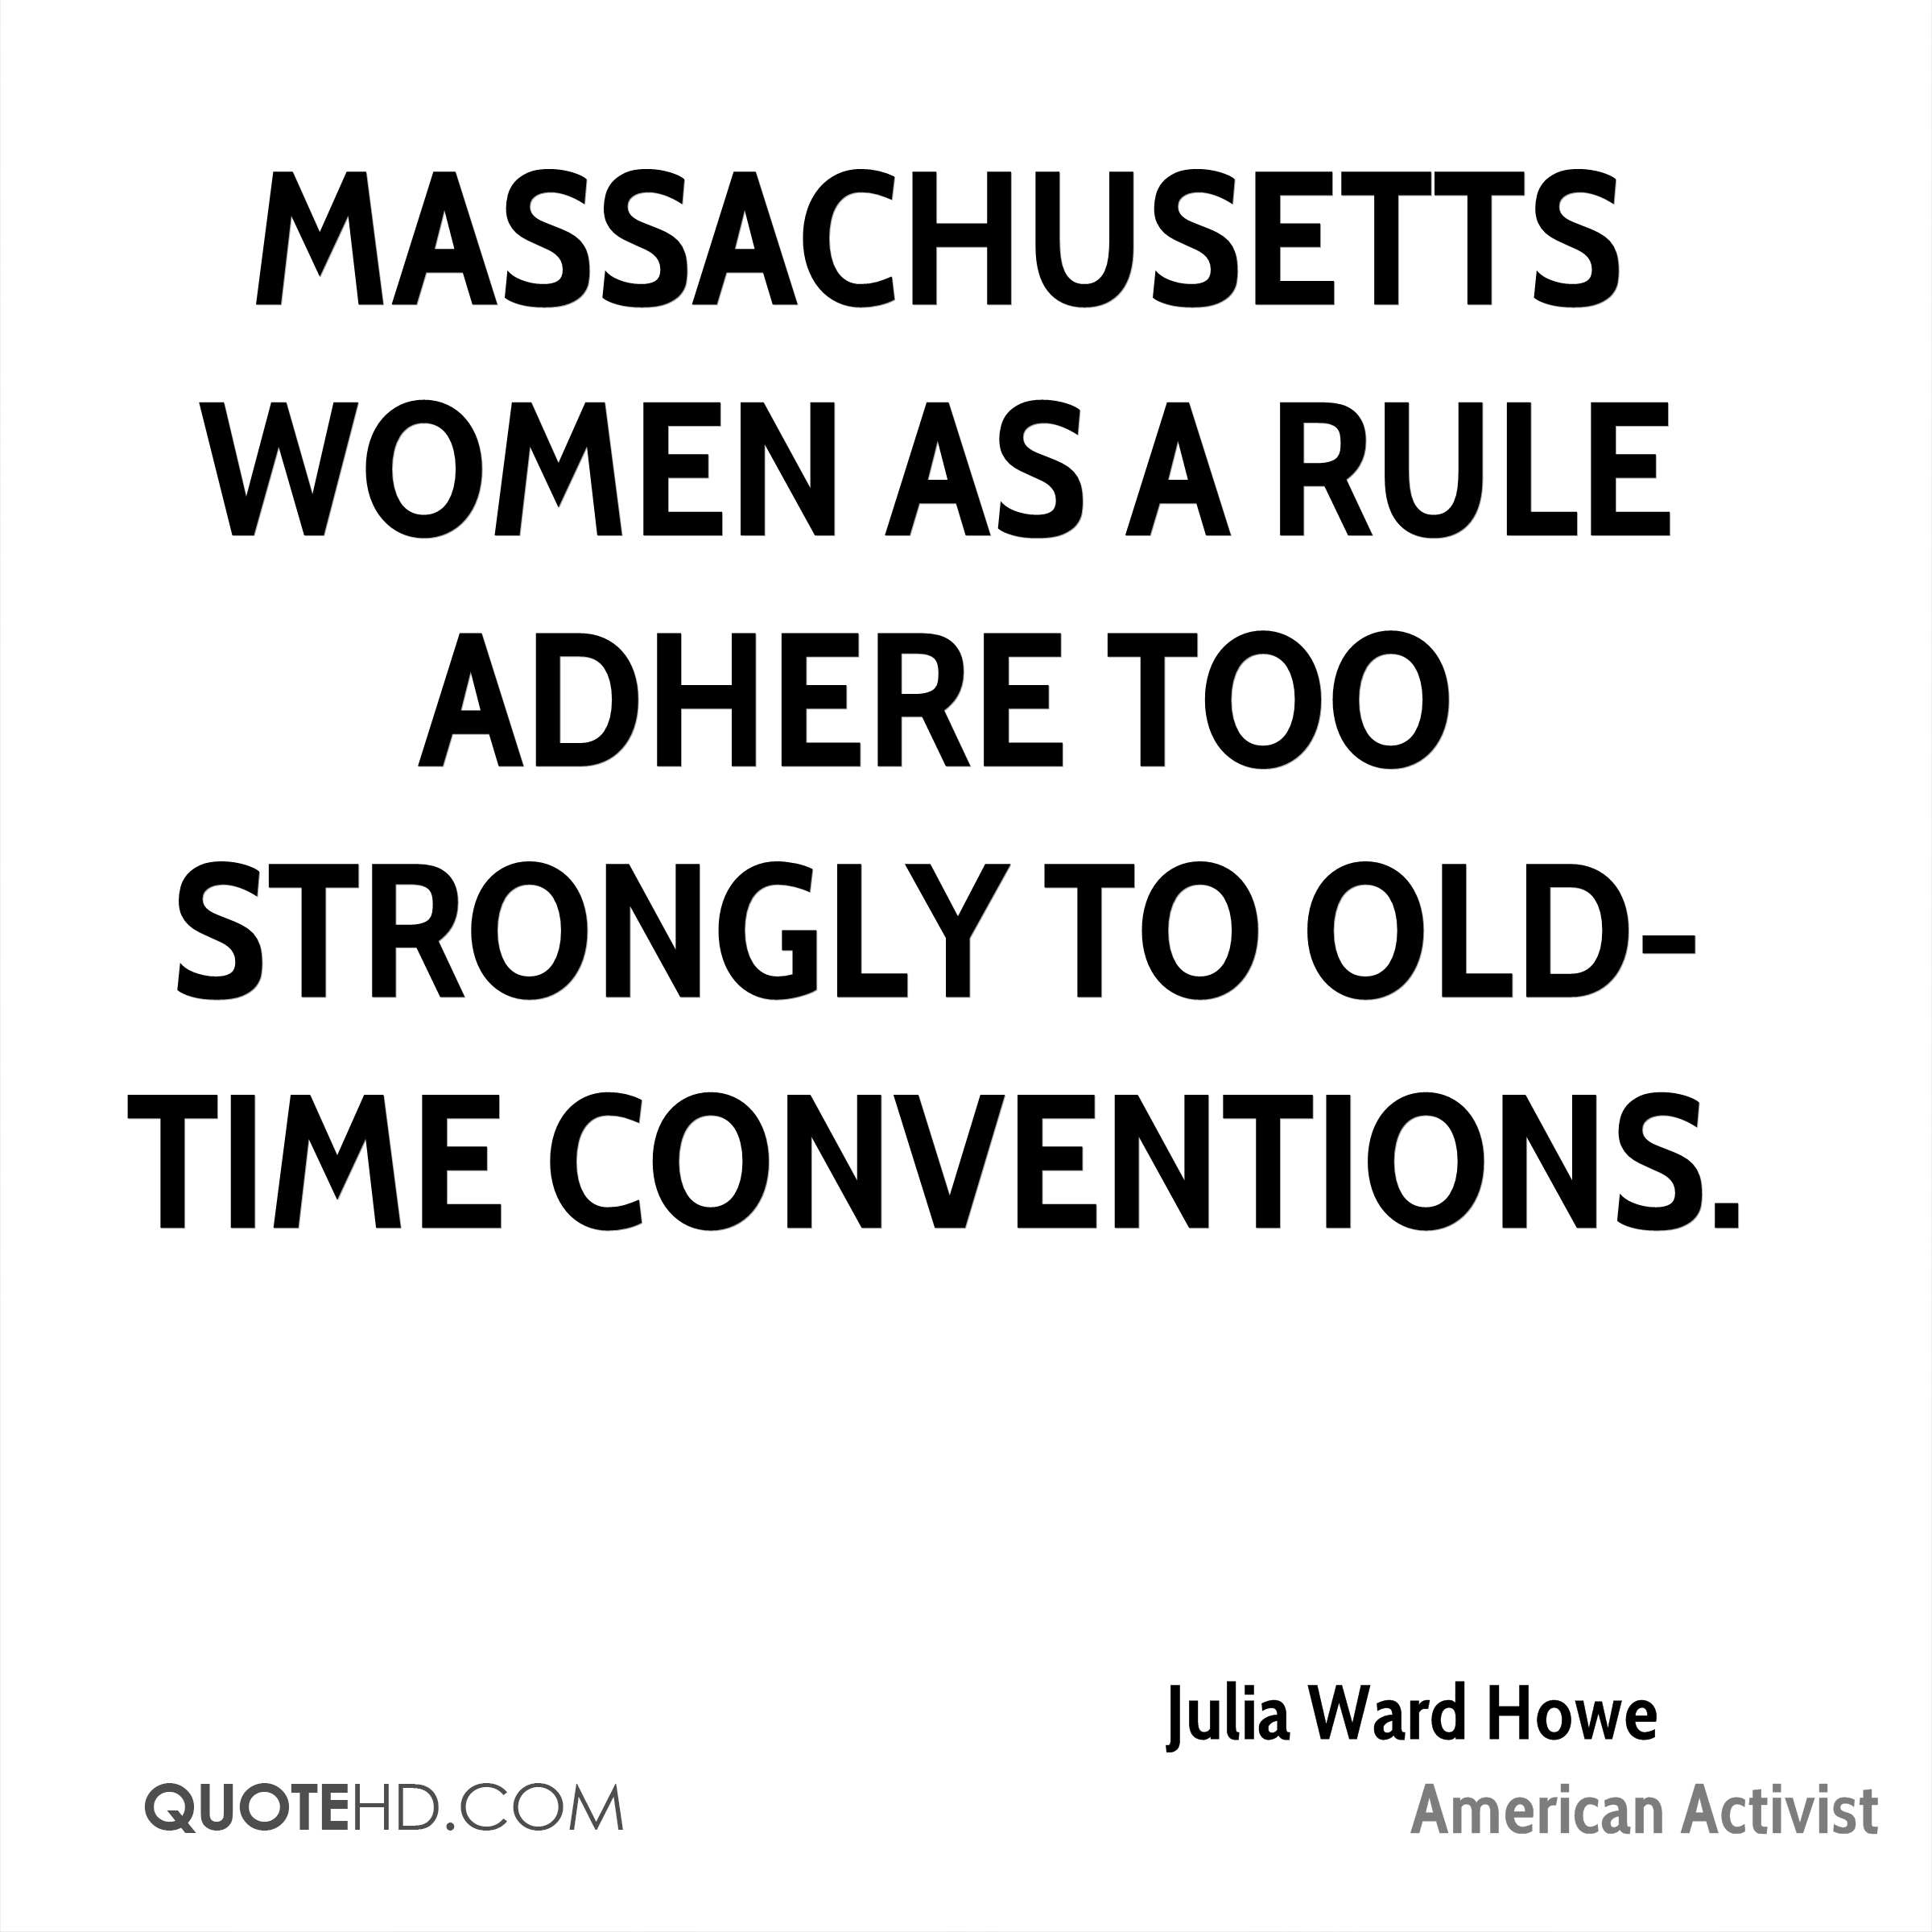 Massachusetts women as a rule adhere too strongly to old-time conventions.